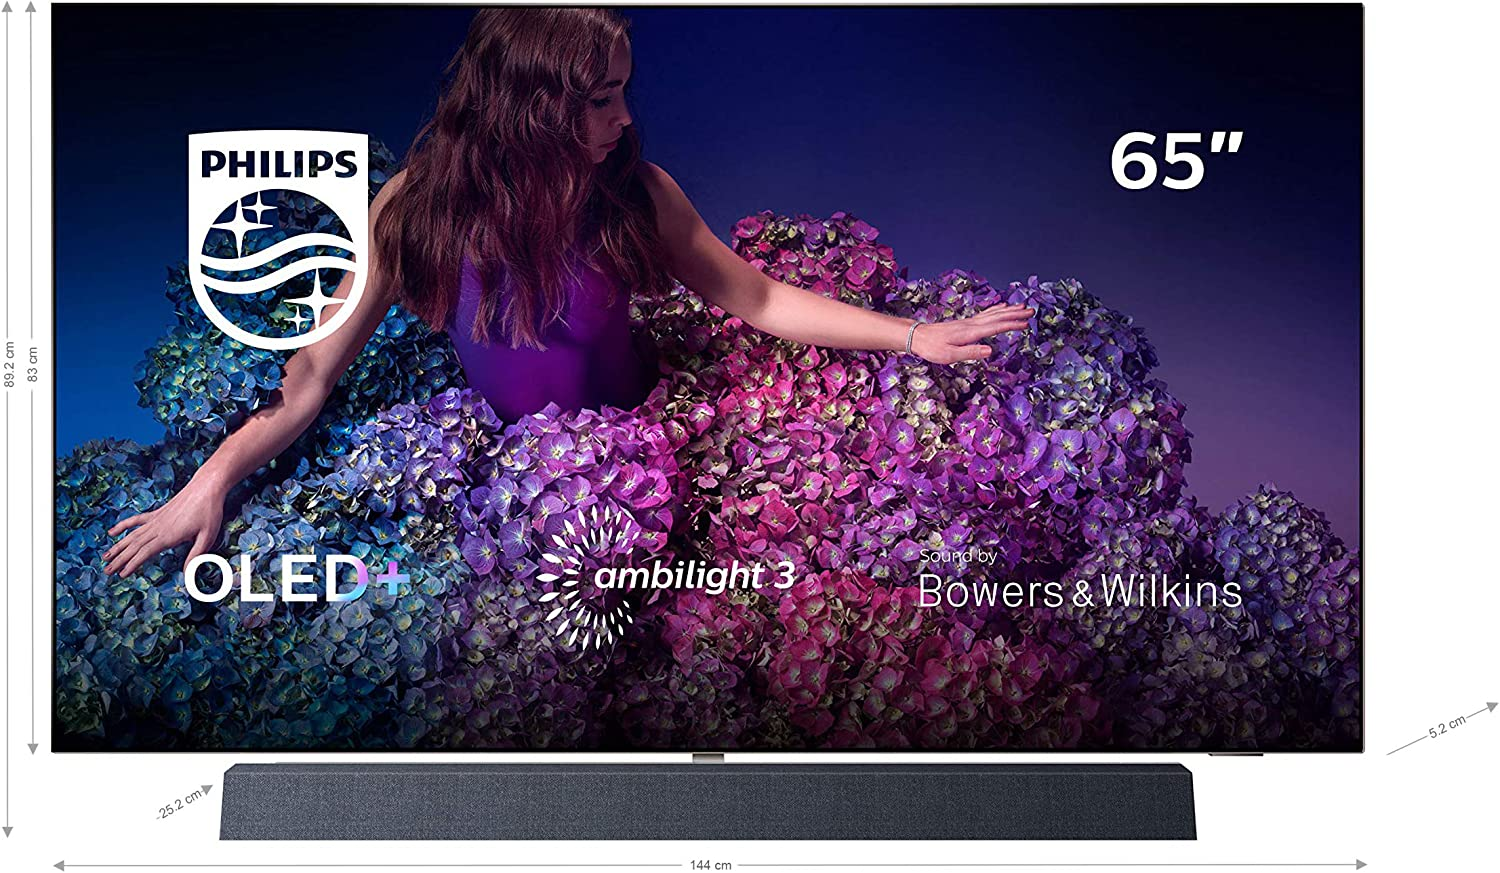 Philips - TV OLED 164 Cm (65) Philips 65Oled934/12 4K HDR Smart TV, Ambilight Y Android TV con Inteligencia Artificial (IA): Amazon.es: Electrónica